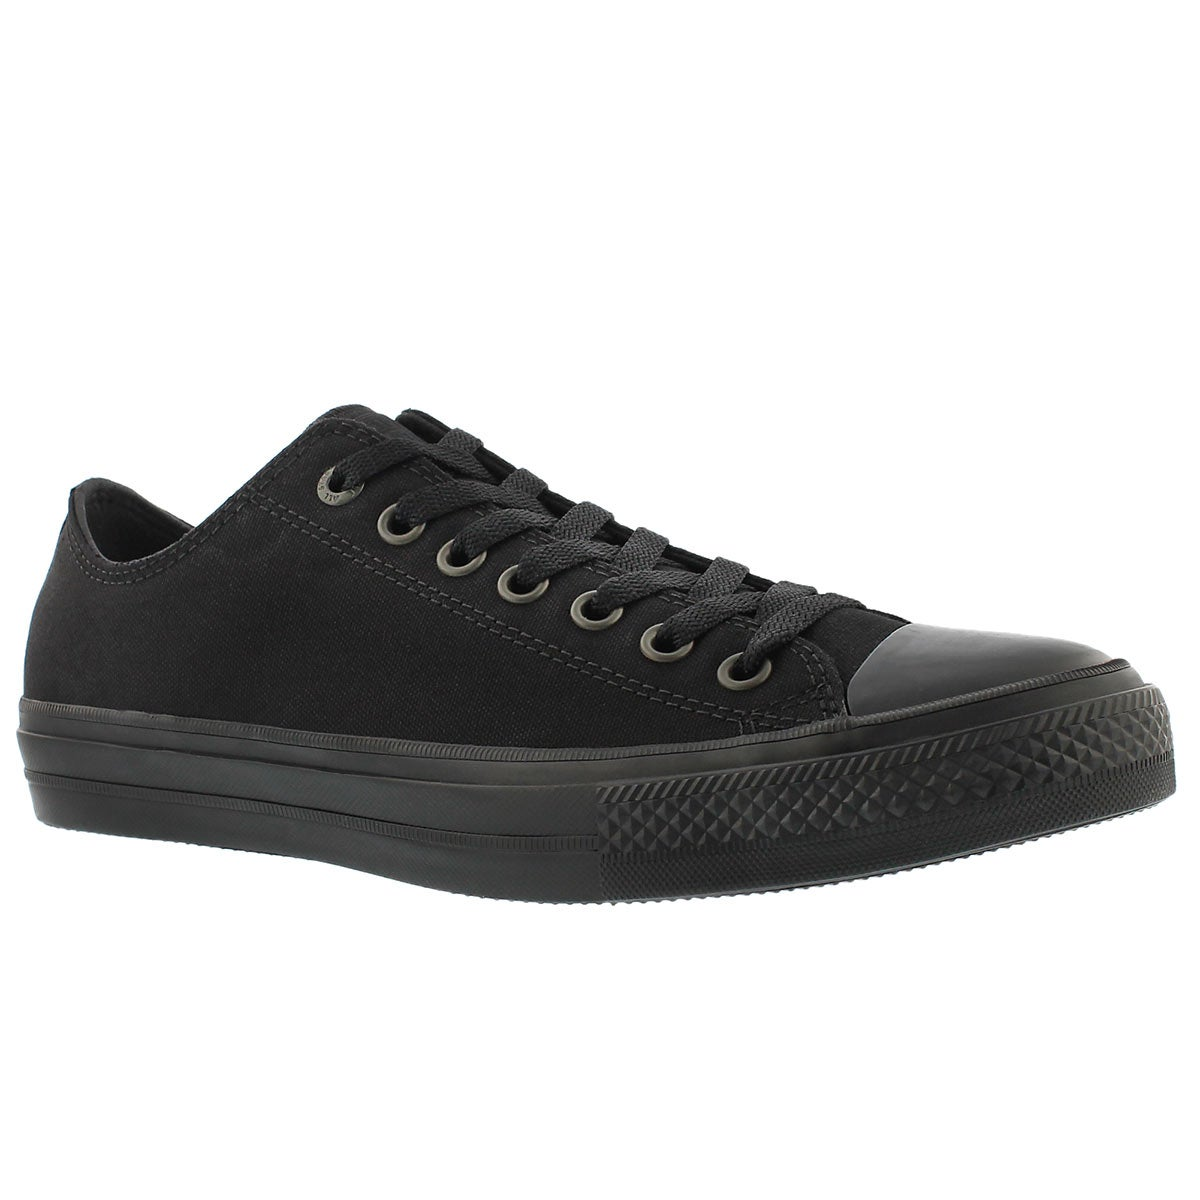 Men's CHUCK II VIZ FLOW black mono sneakers